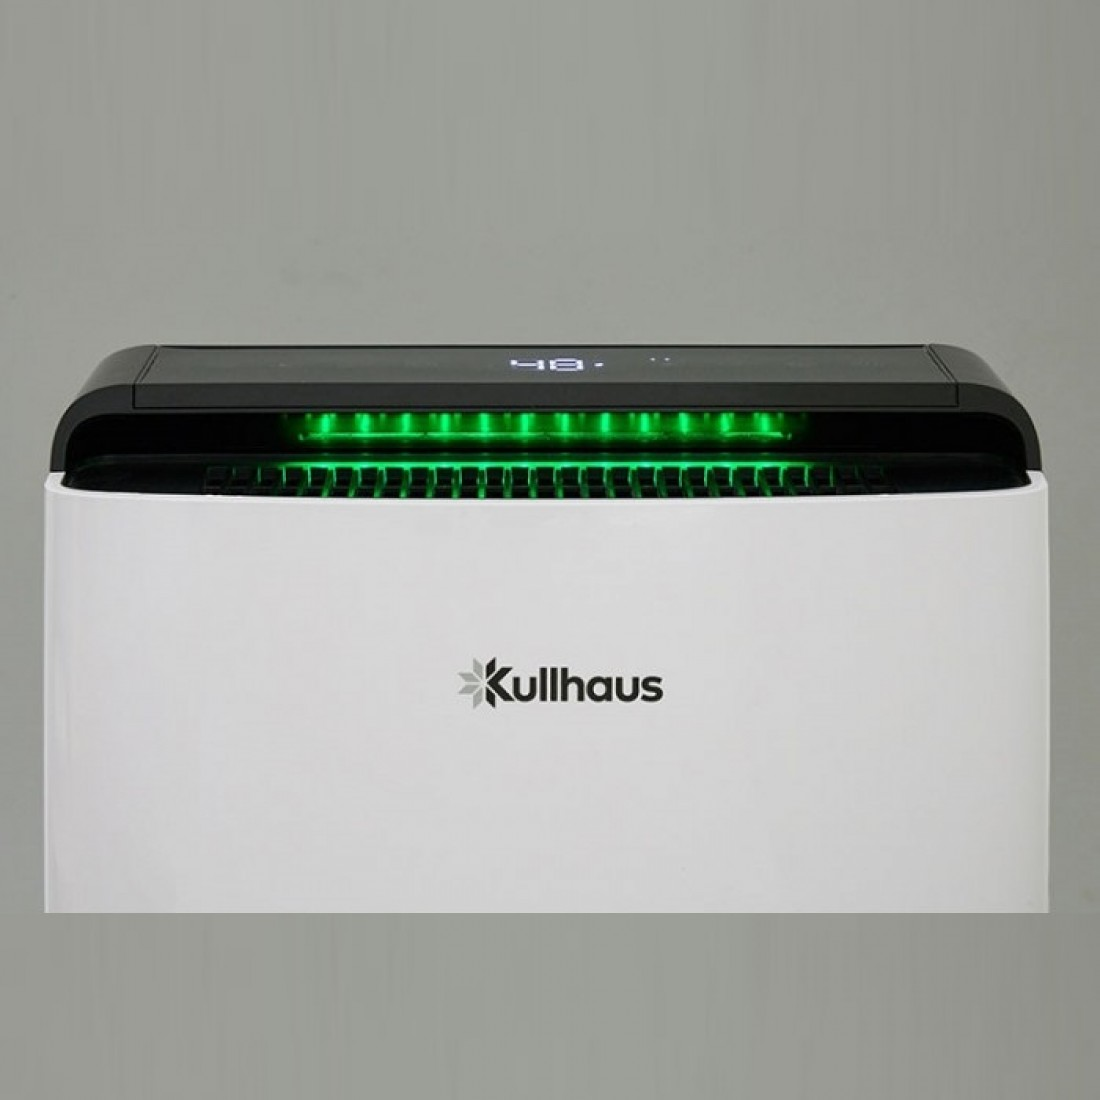 Kullhaus Qualis 20l Ion Dehumidifier With Compressor Overvoltage Protected Control